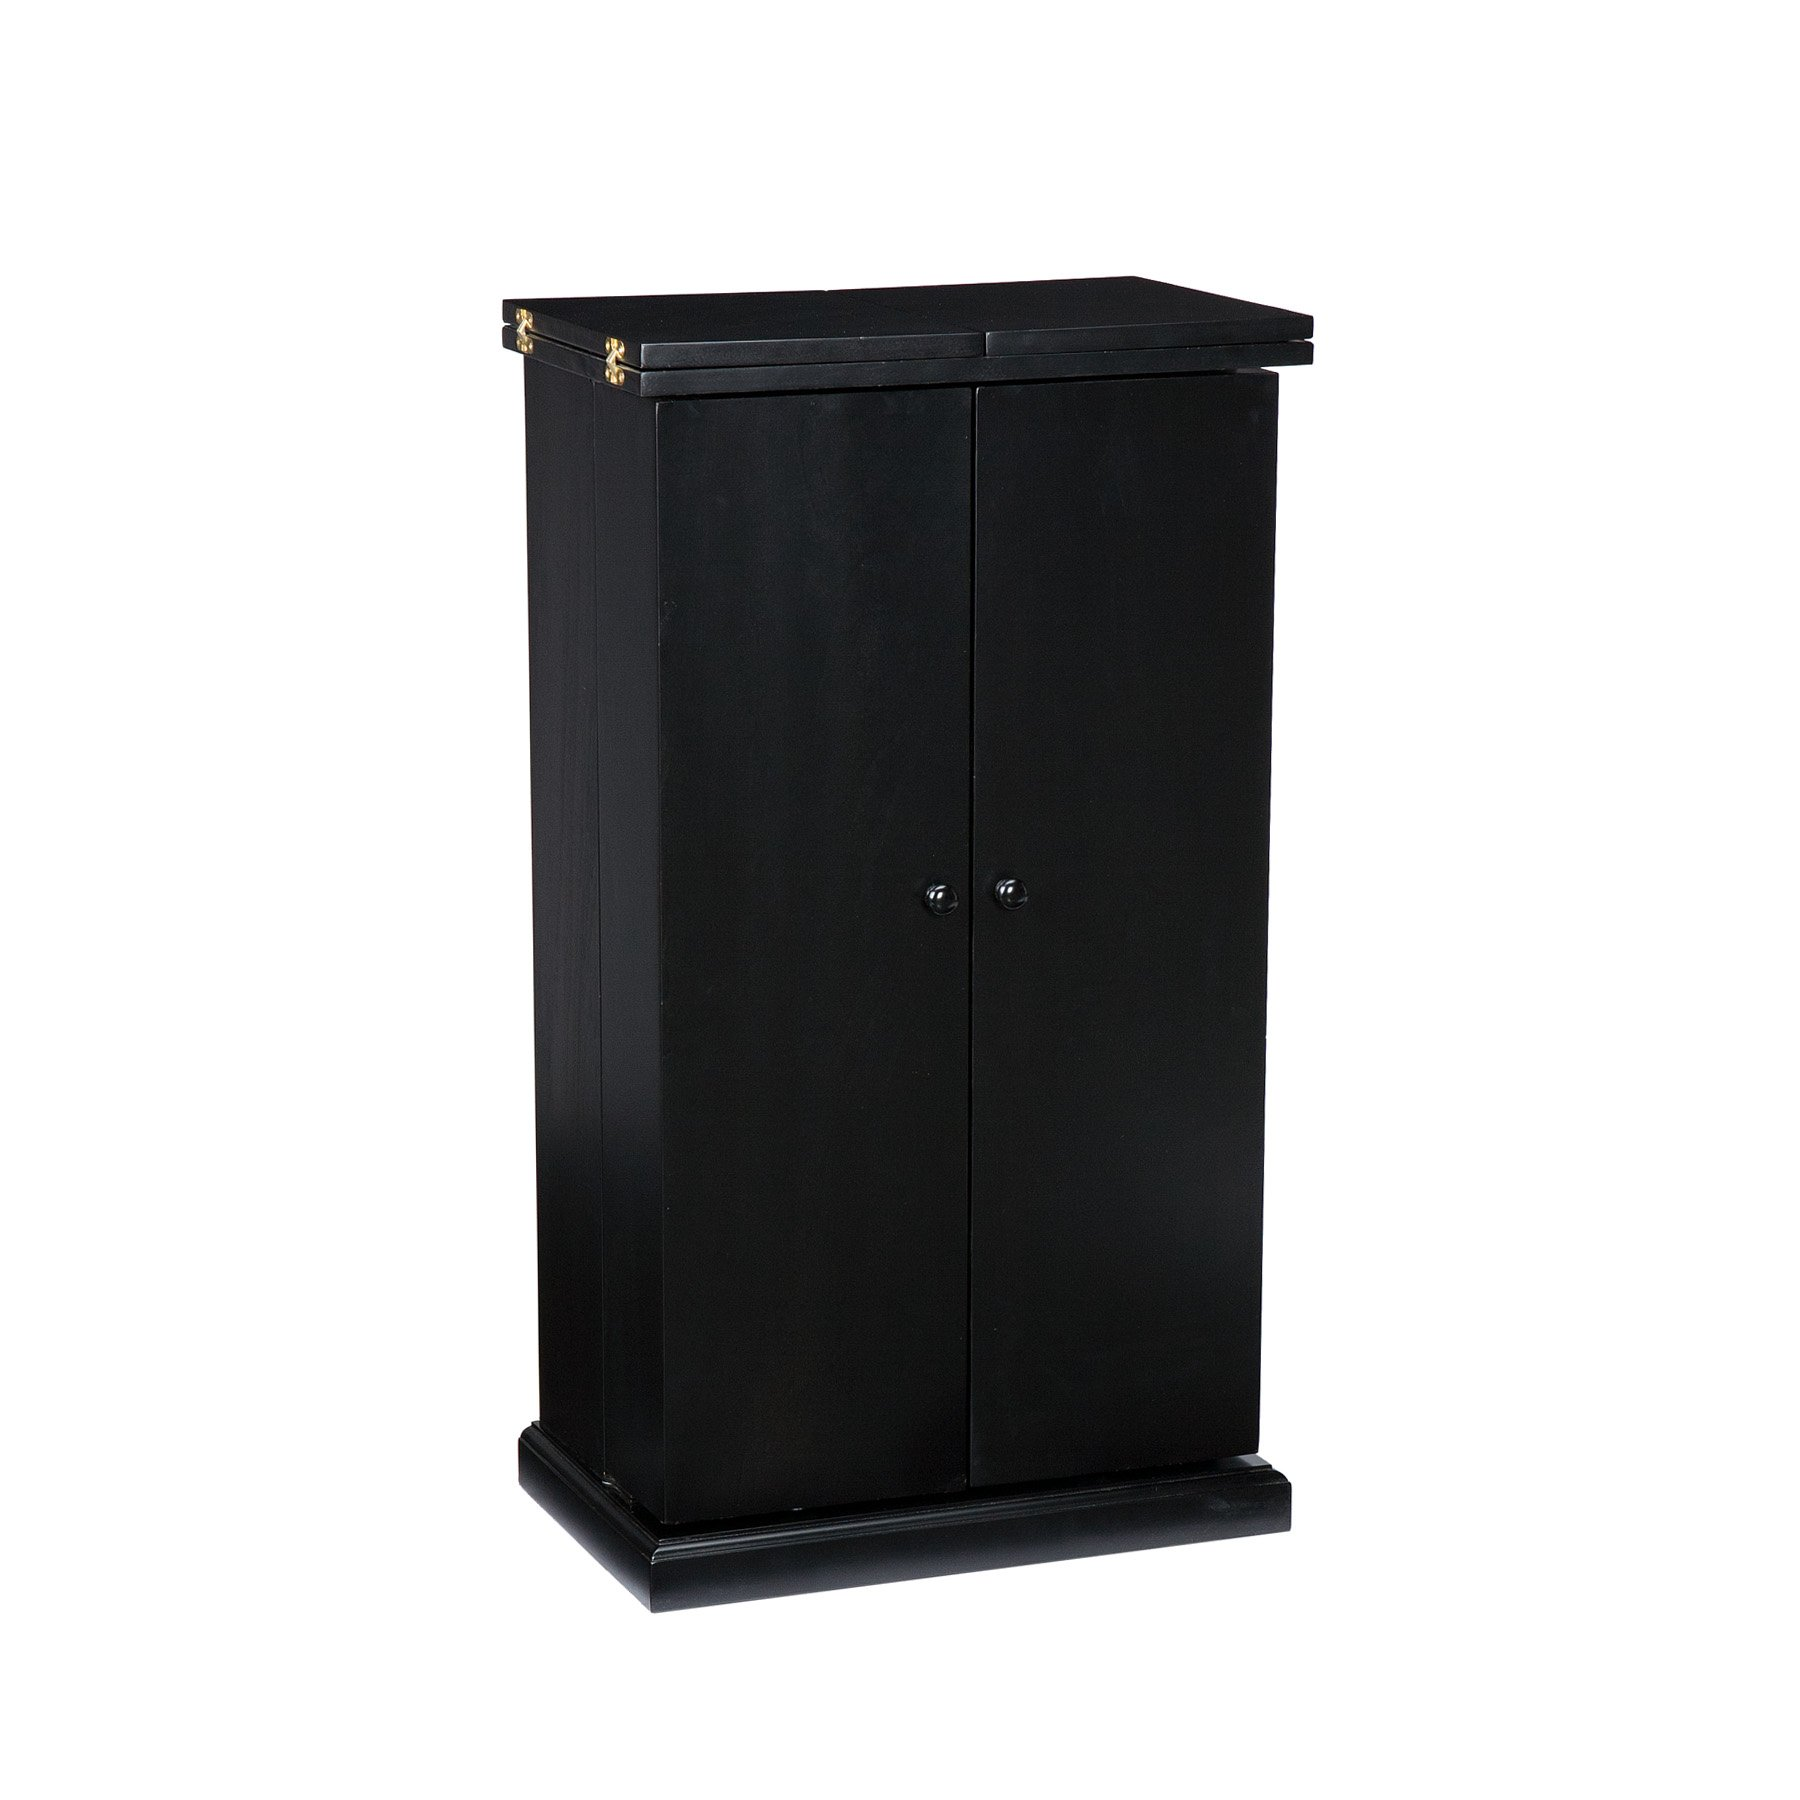 Southern Enterprises Space Saving Fold Away Bar Cabinet - Multiple Compartments - Deep Black Finish by Southern Enterprises